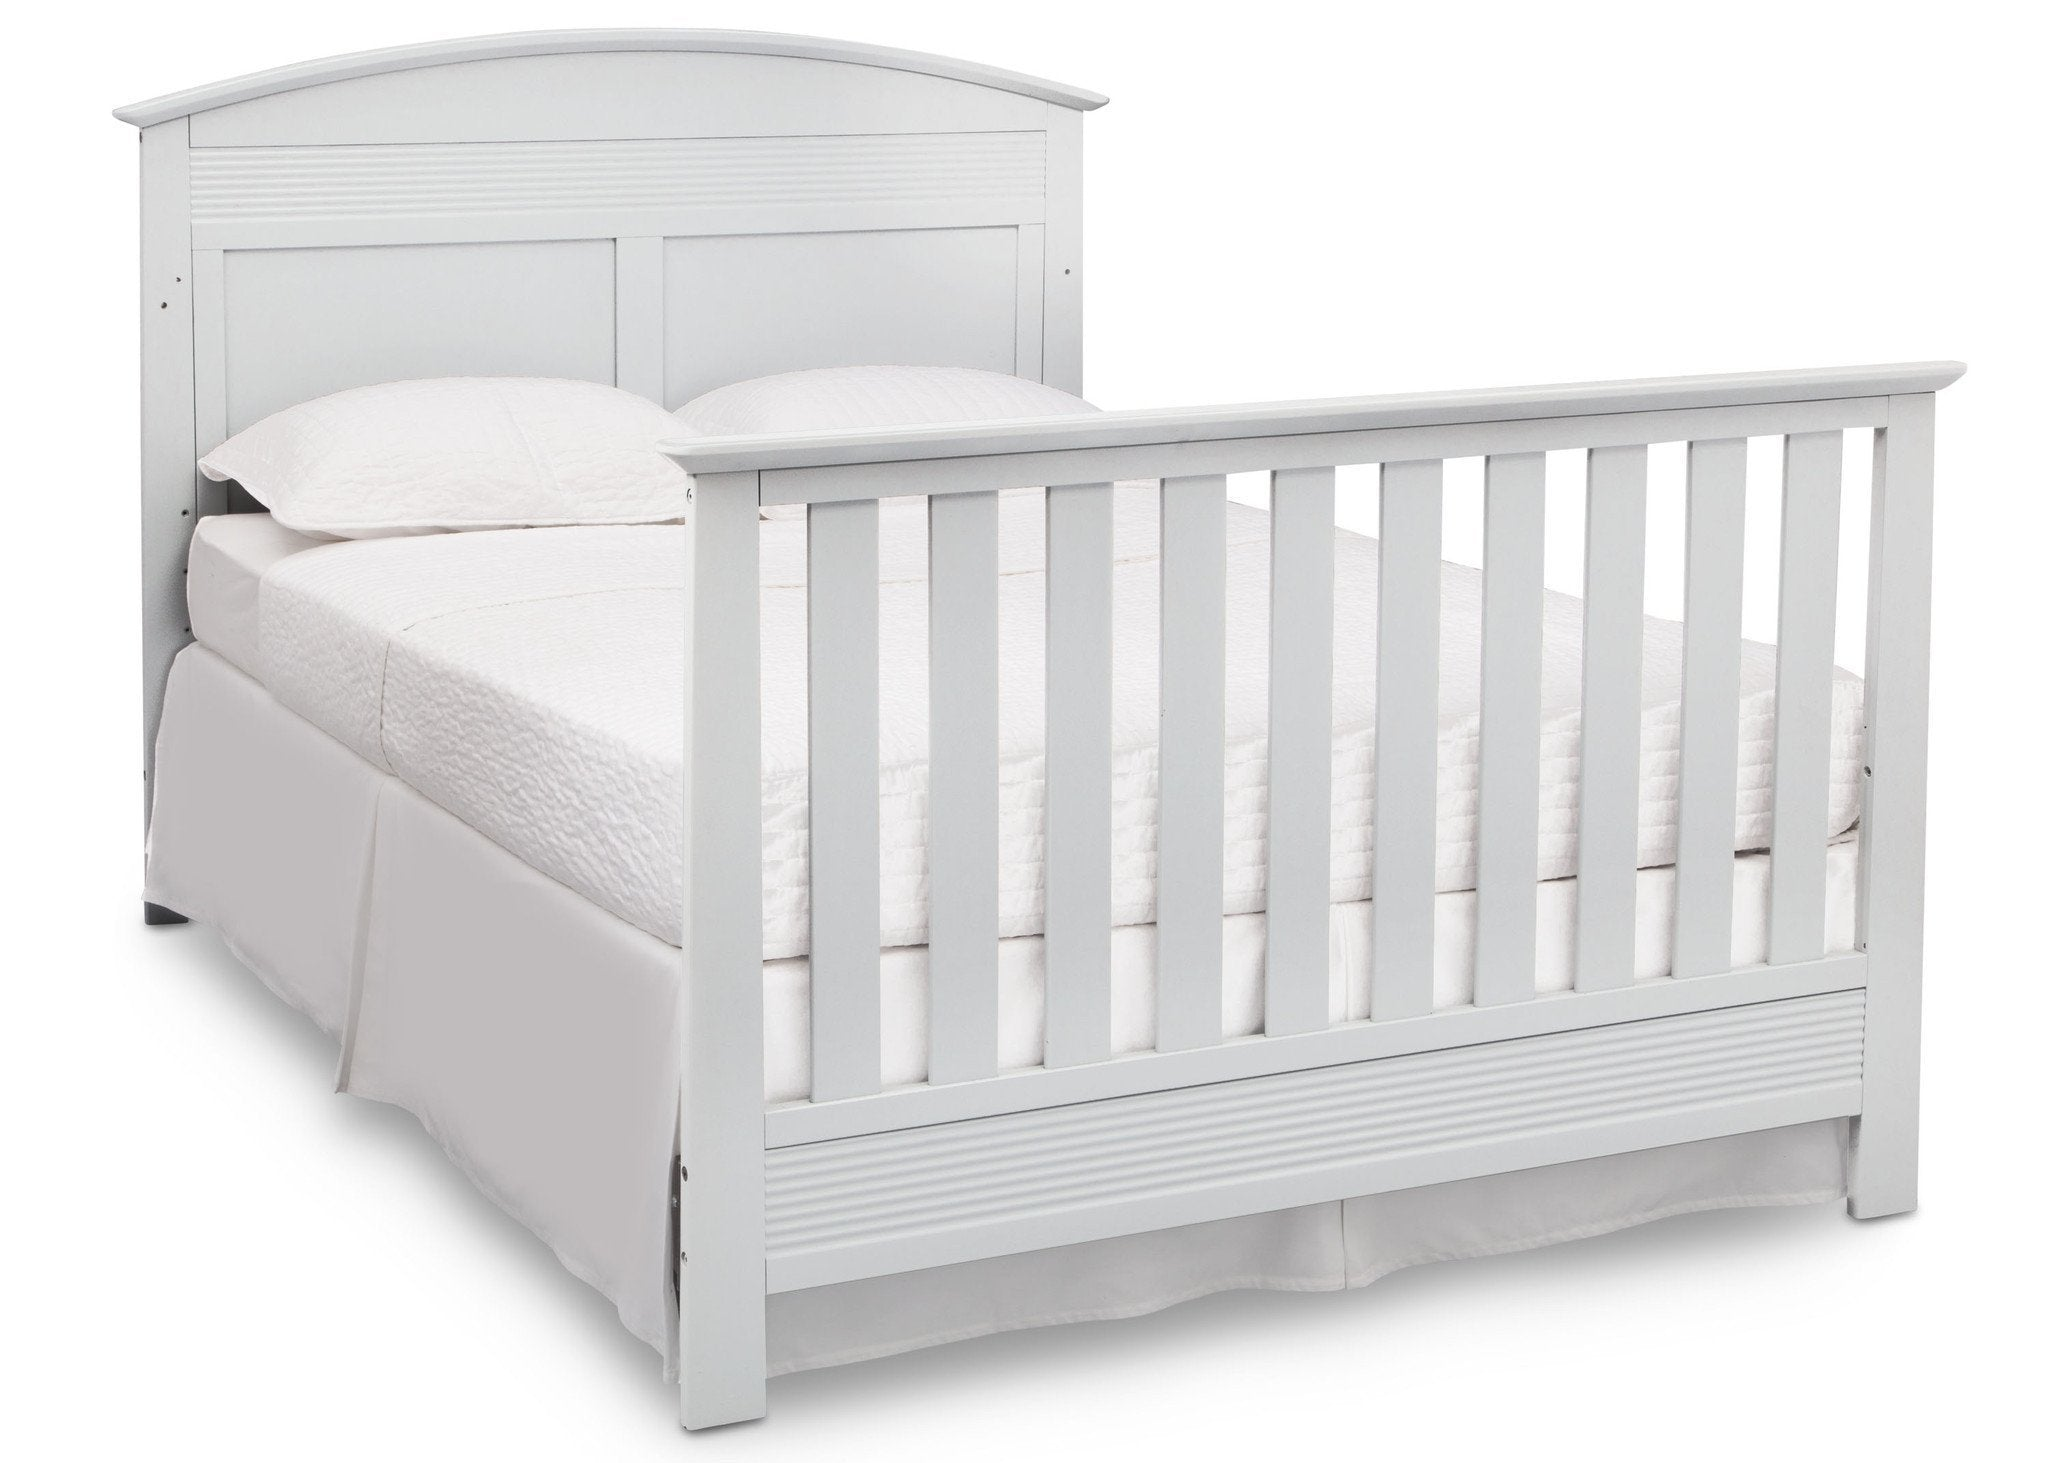 Serta Bianca White (130) Ashland 4-in-1 Convertible Crib, Right Full Bed View with Footboard b6b